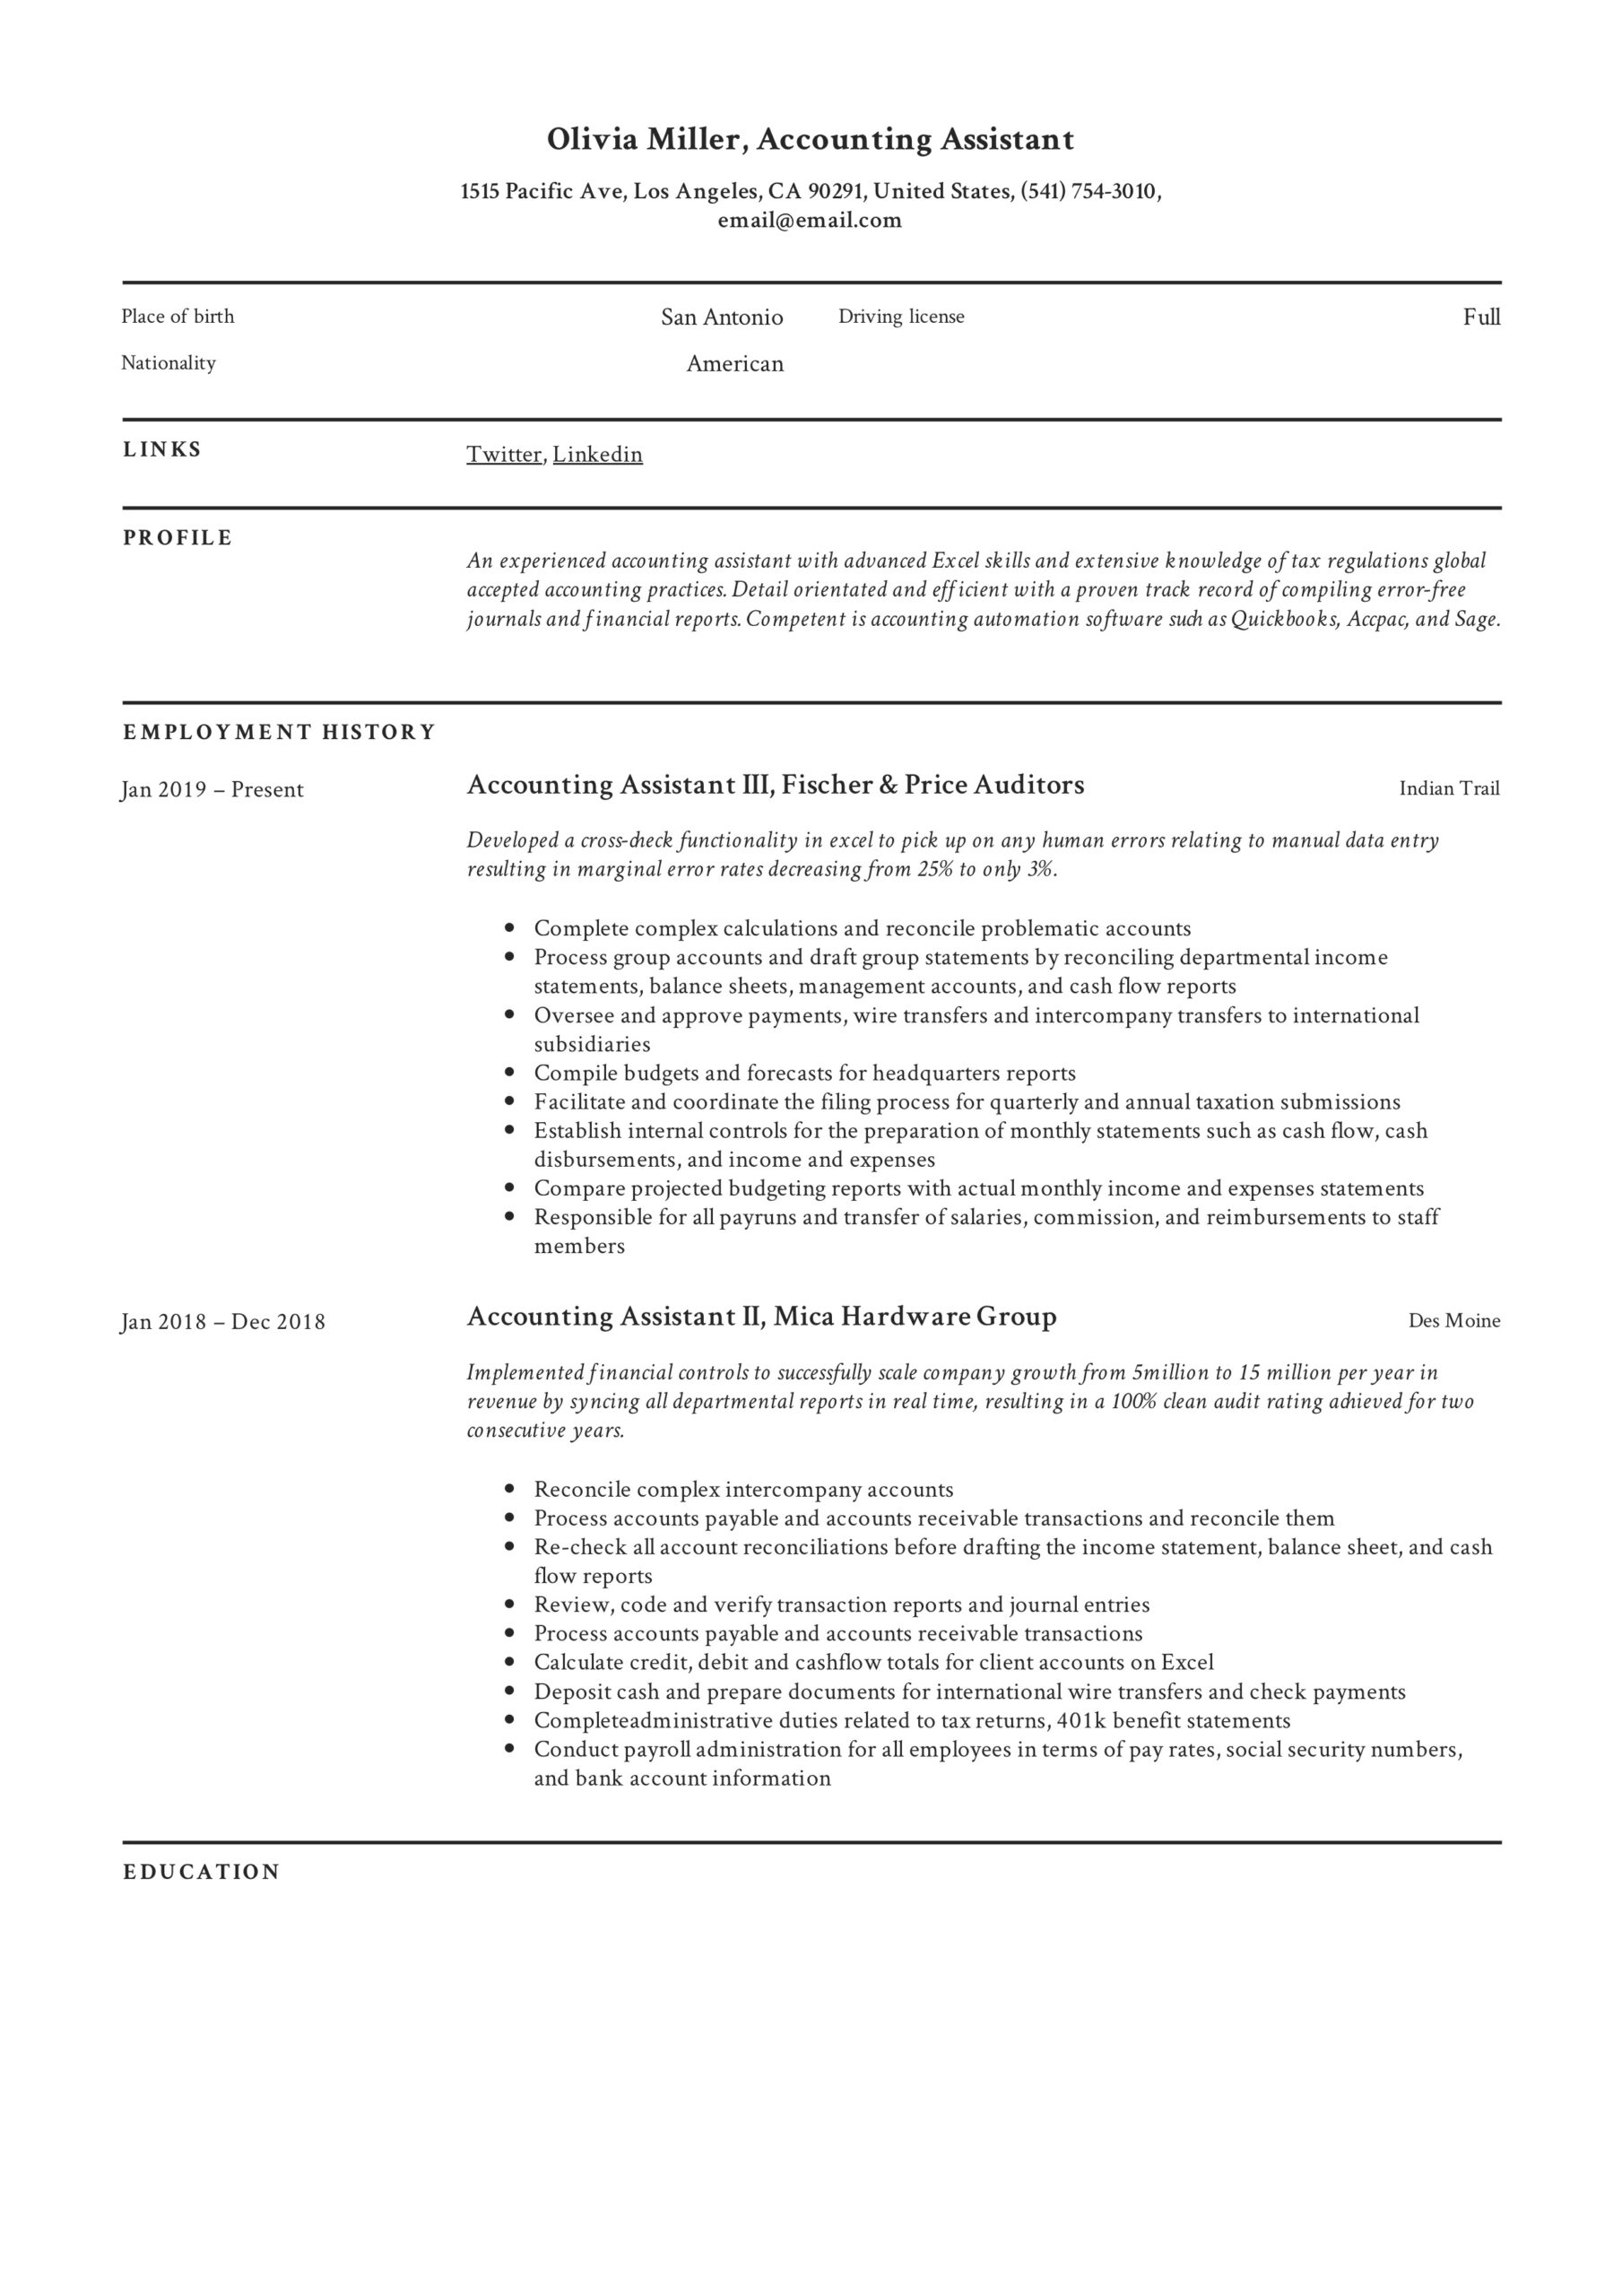 accounting assistant resume writing guide examples pdf for account indian format lyrics Resume Resume For Account Assistant Indian Format